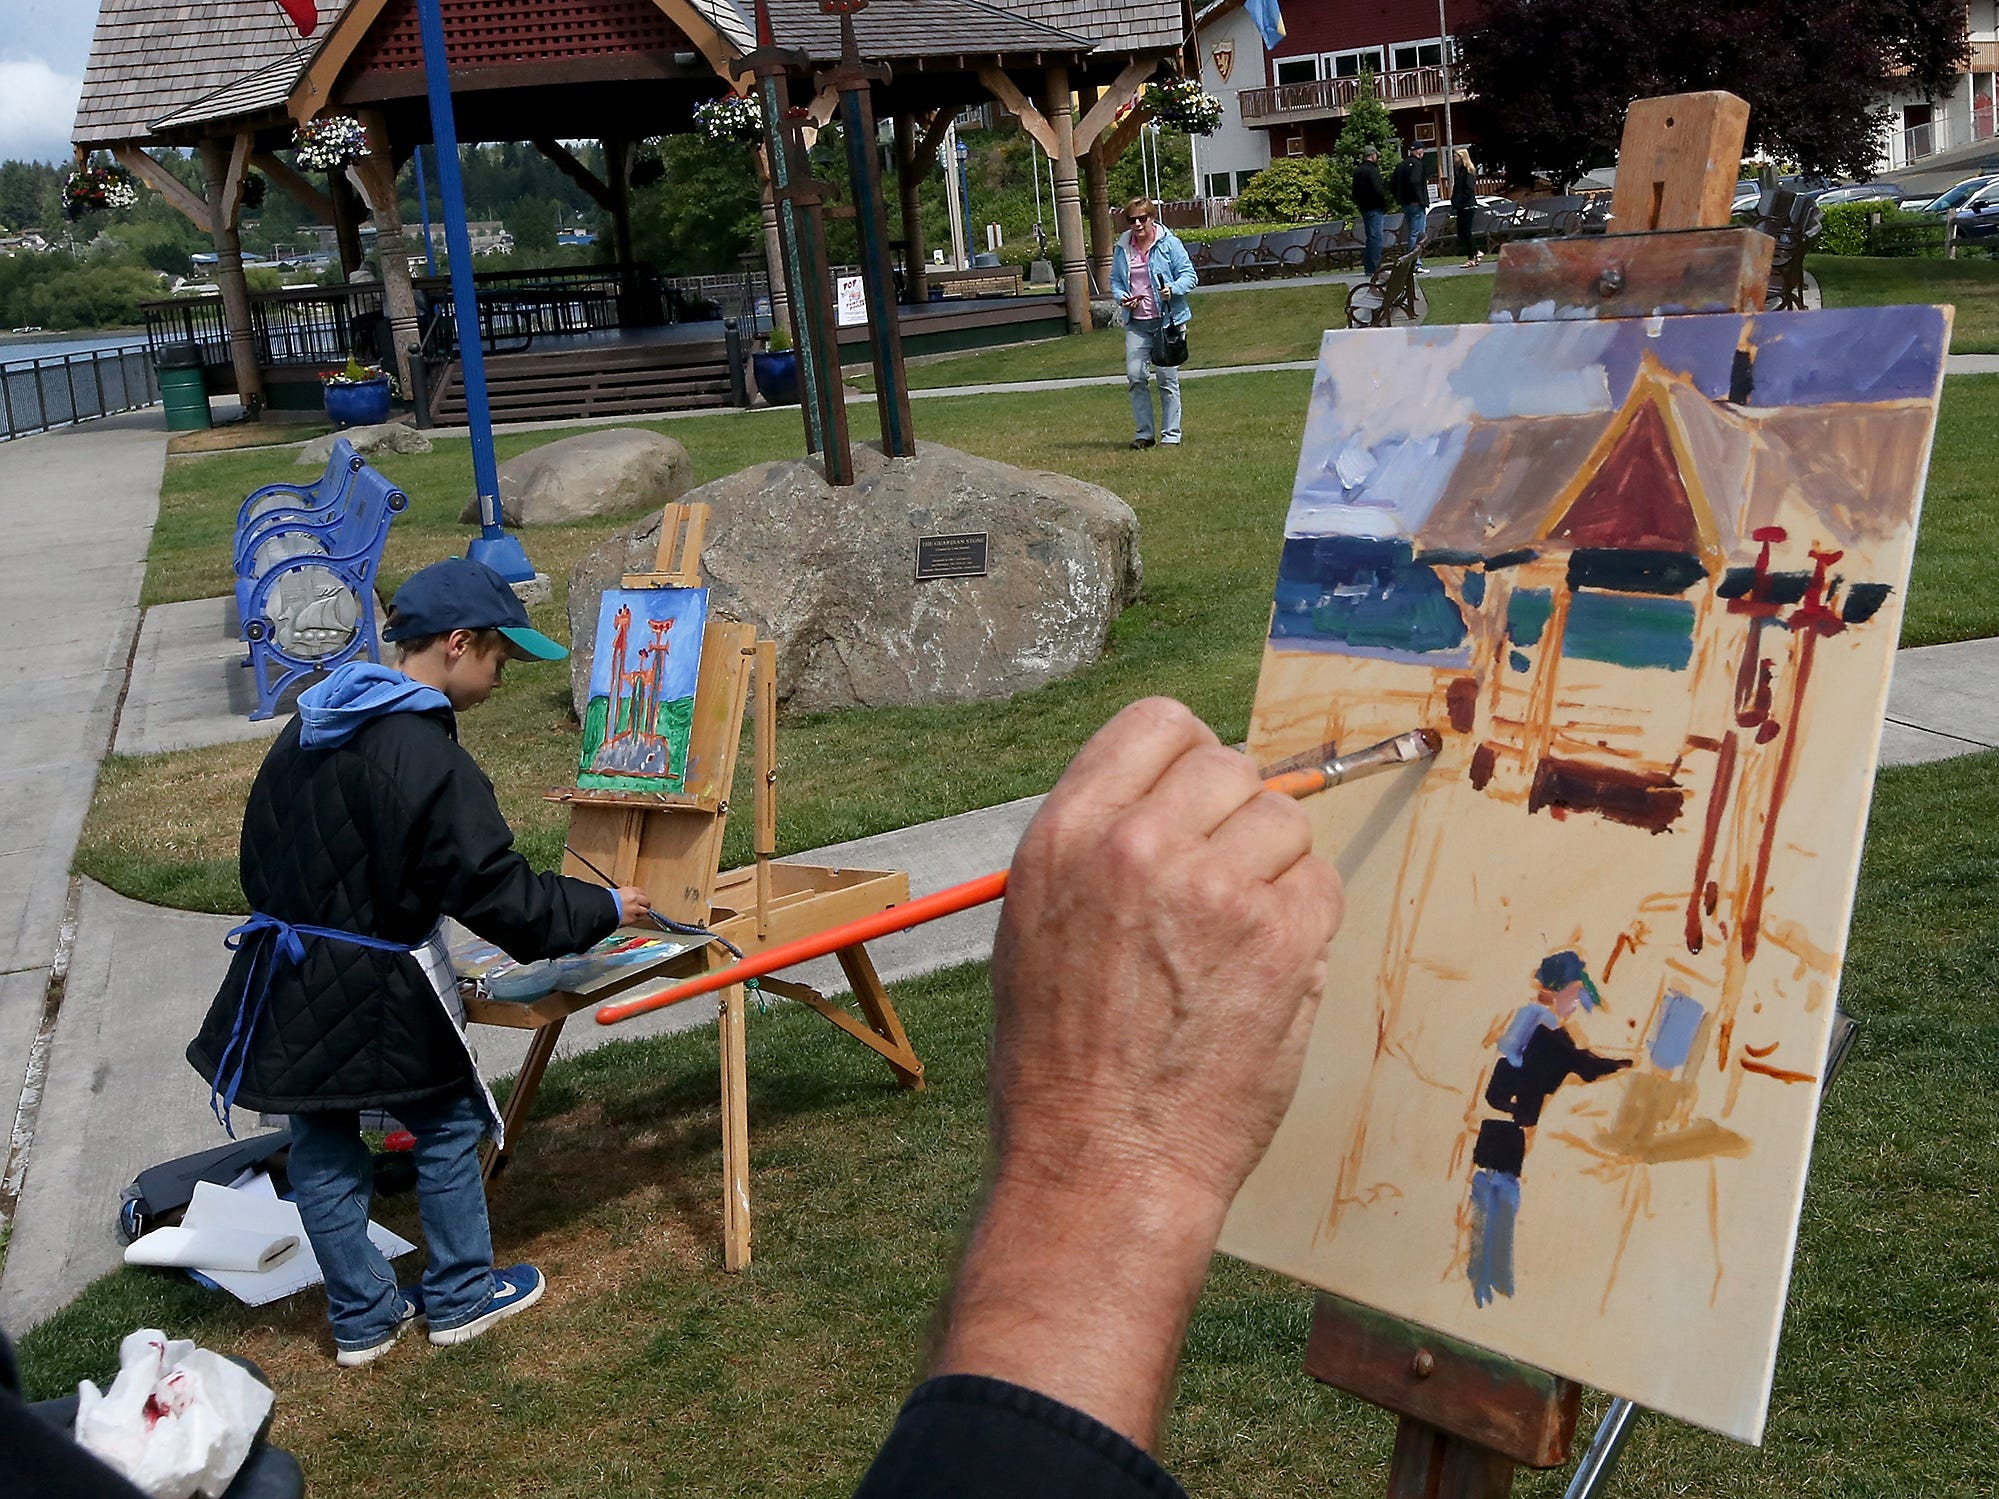 Robin Weiss, of Poulsbo, added his grandson Chase Koenigs, 8, (at left) into his painting as the two take part in the Plein Air Competition at Poulsbo's Waterfront Park on Friday, June 1, 2018. The painting competition kicked off the start of Paint out Poulsbo, a two-day music and arts festival organized by Peninsula Music and Arts Society.